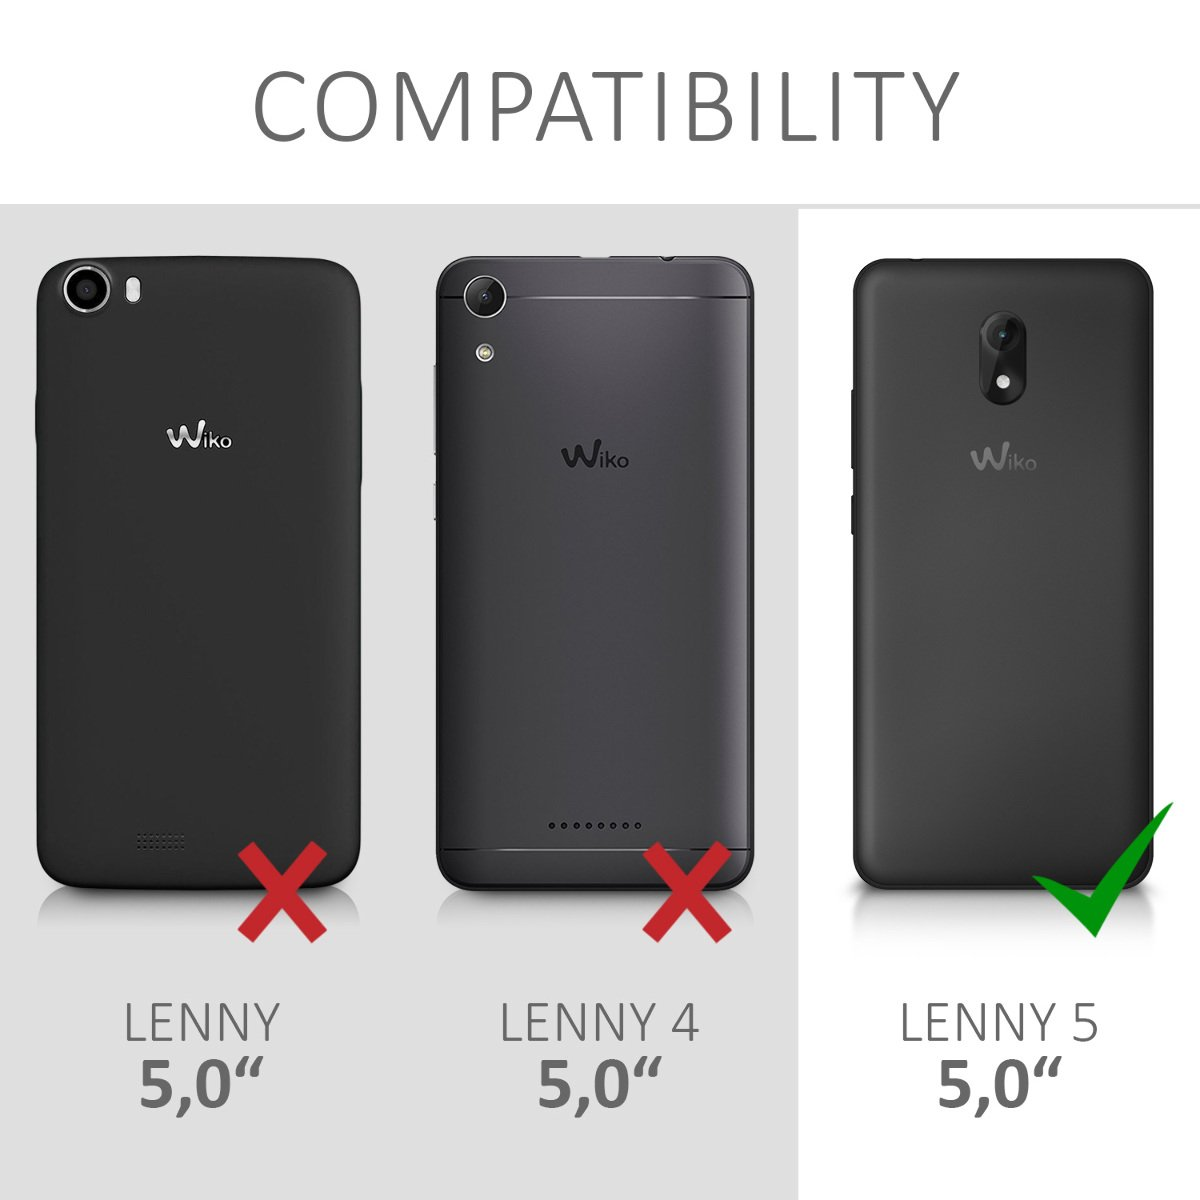 kwmobile TPU Silicone Case for Wiko Lenny 5 - Soft Flexible Shock Absorbent Protective Phone Cover - Black Matte